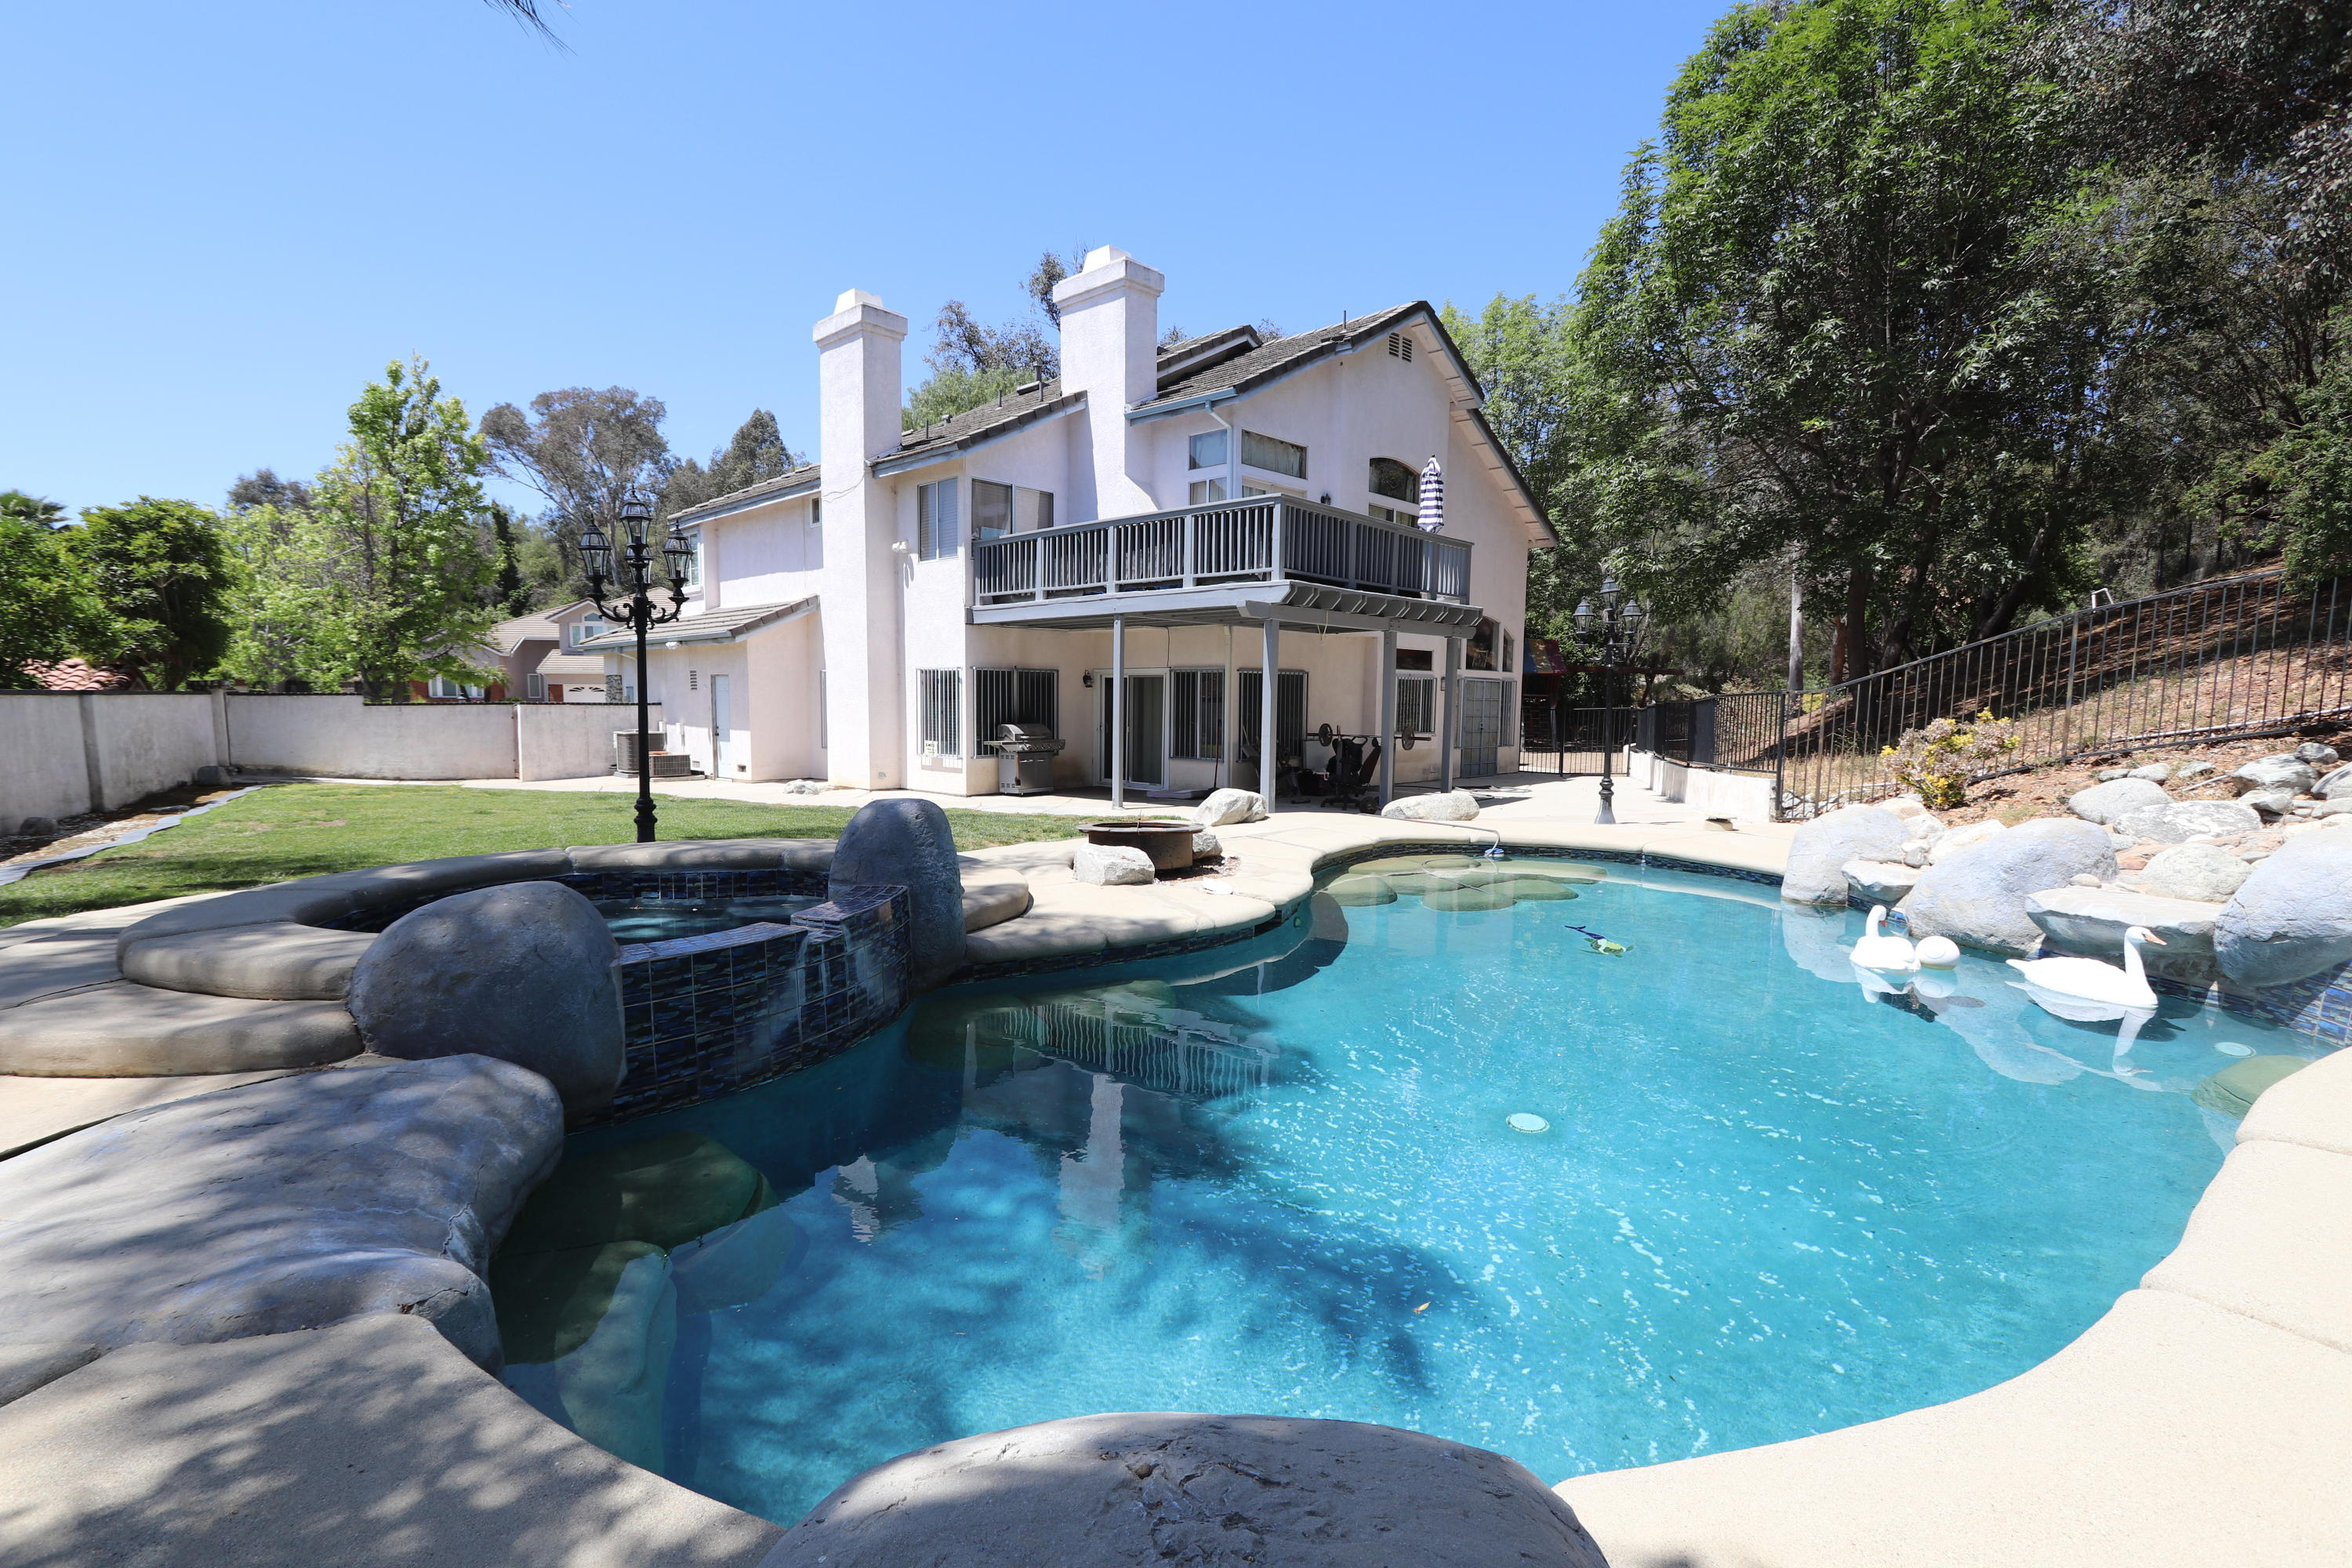 Rare opportunity in Phillips Ranch Area - Hillside Cul-de-Sac home on a spacious 18,000 square foot lot.  Lagoon style saltwater pool and spa.  Views of mature trees, hills, and a valley slope.   This 2 story estate boasts 2,901 square feet of living space, 4 spacious bedrooms, 4 bathrooms, scenic balcony, and gourmet kitchen.  Granite counter tops, wood flooring, 2 fireplaces (1 in the master and 1 in the living room).  Vintage charm with stone accents, 3 car garage, vaulted ceilings, 2 ac units, perfect retreat with lots of potential.  Hiking close by, short distance from dining and shopping.